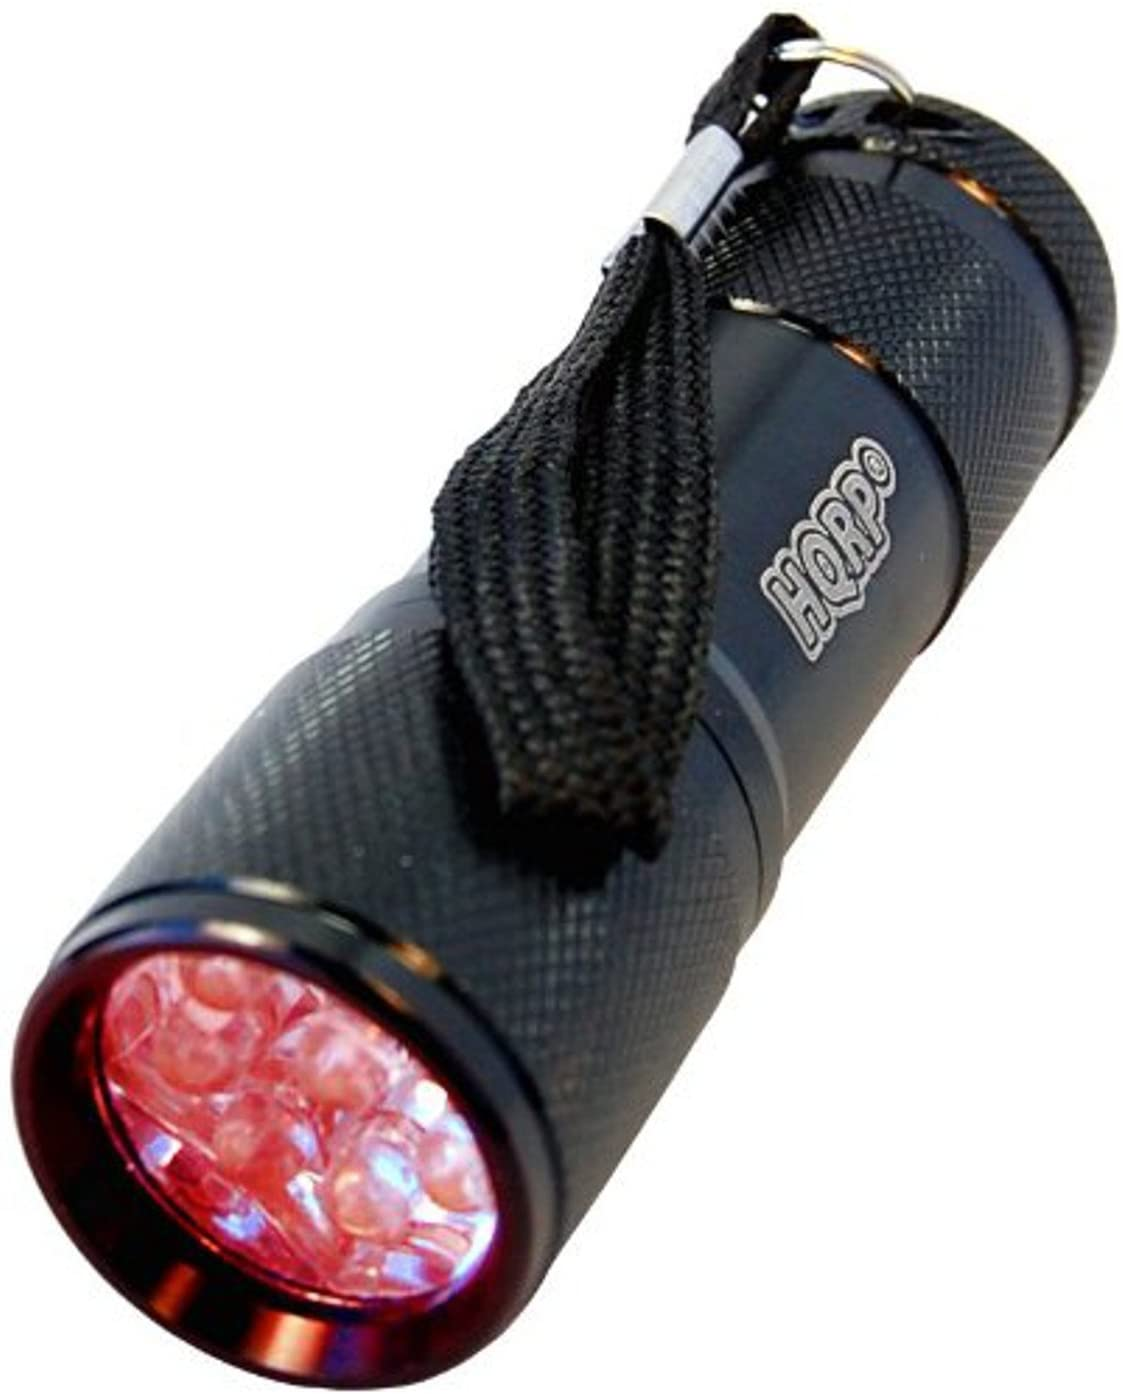 HQRP Portable Pocket Red Light Flashlight with 9 LEDs for Watching Iguanas and Snakes, Hamsters and Hedgehogs, Turtles and Reptiles at Night